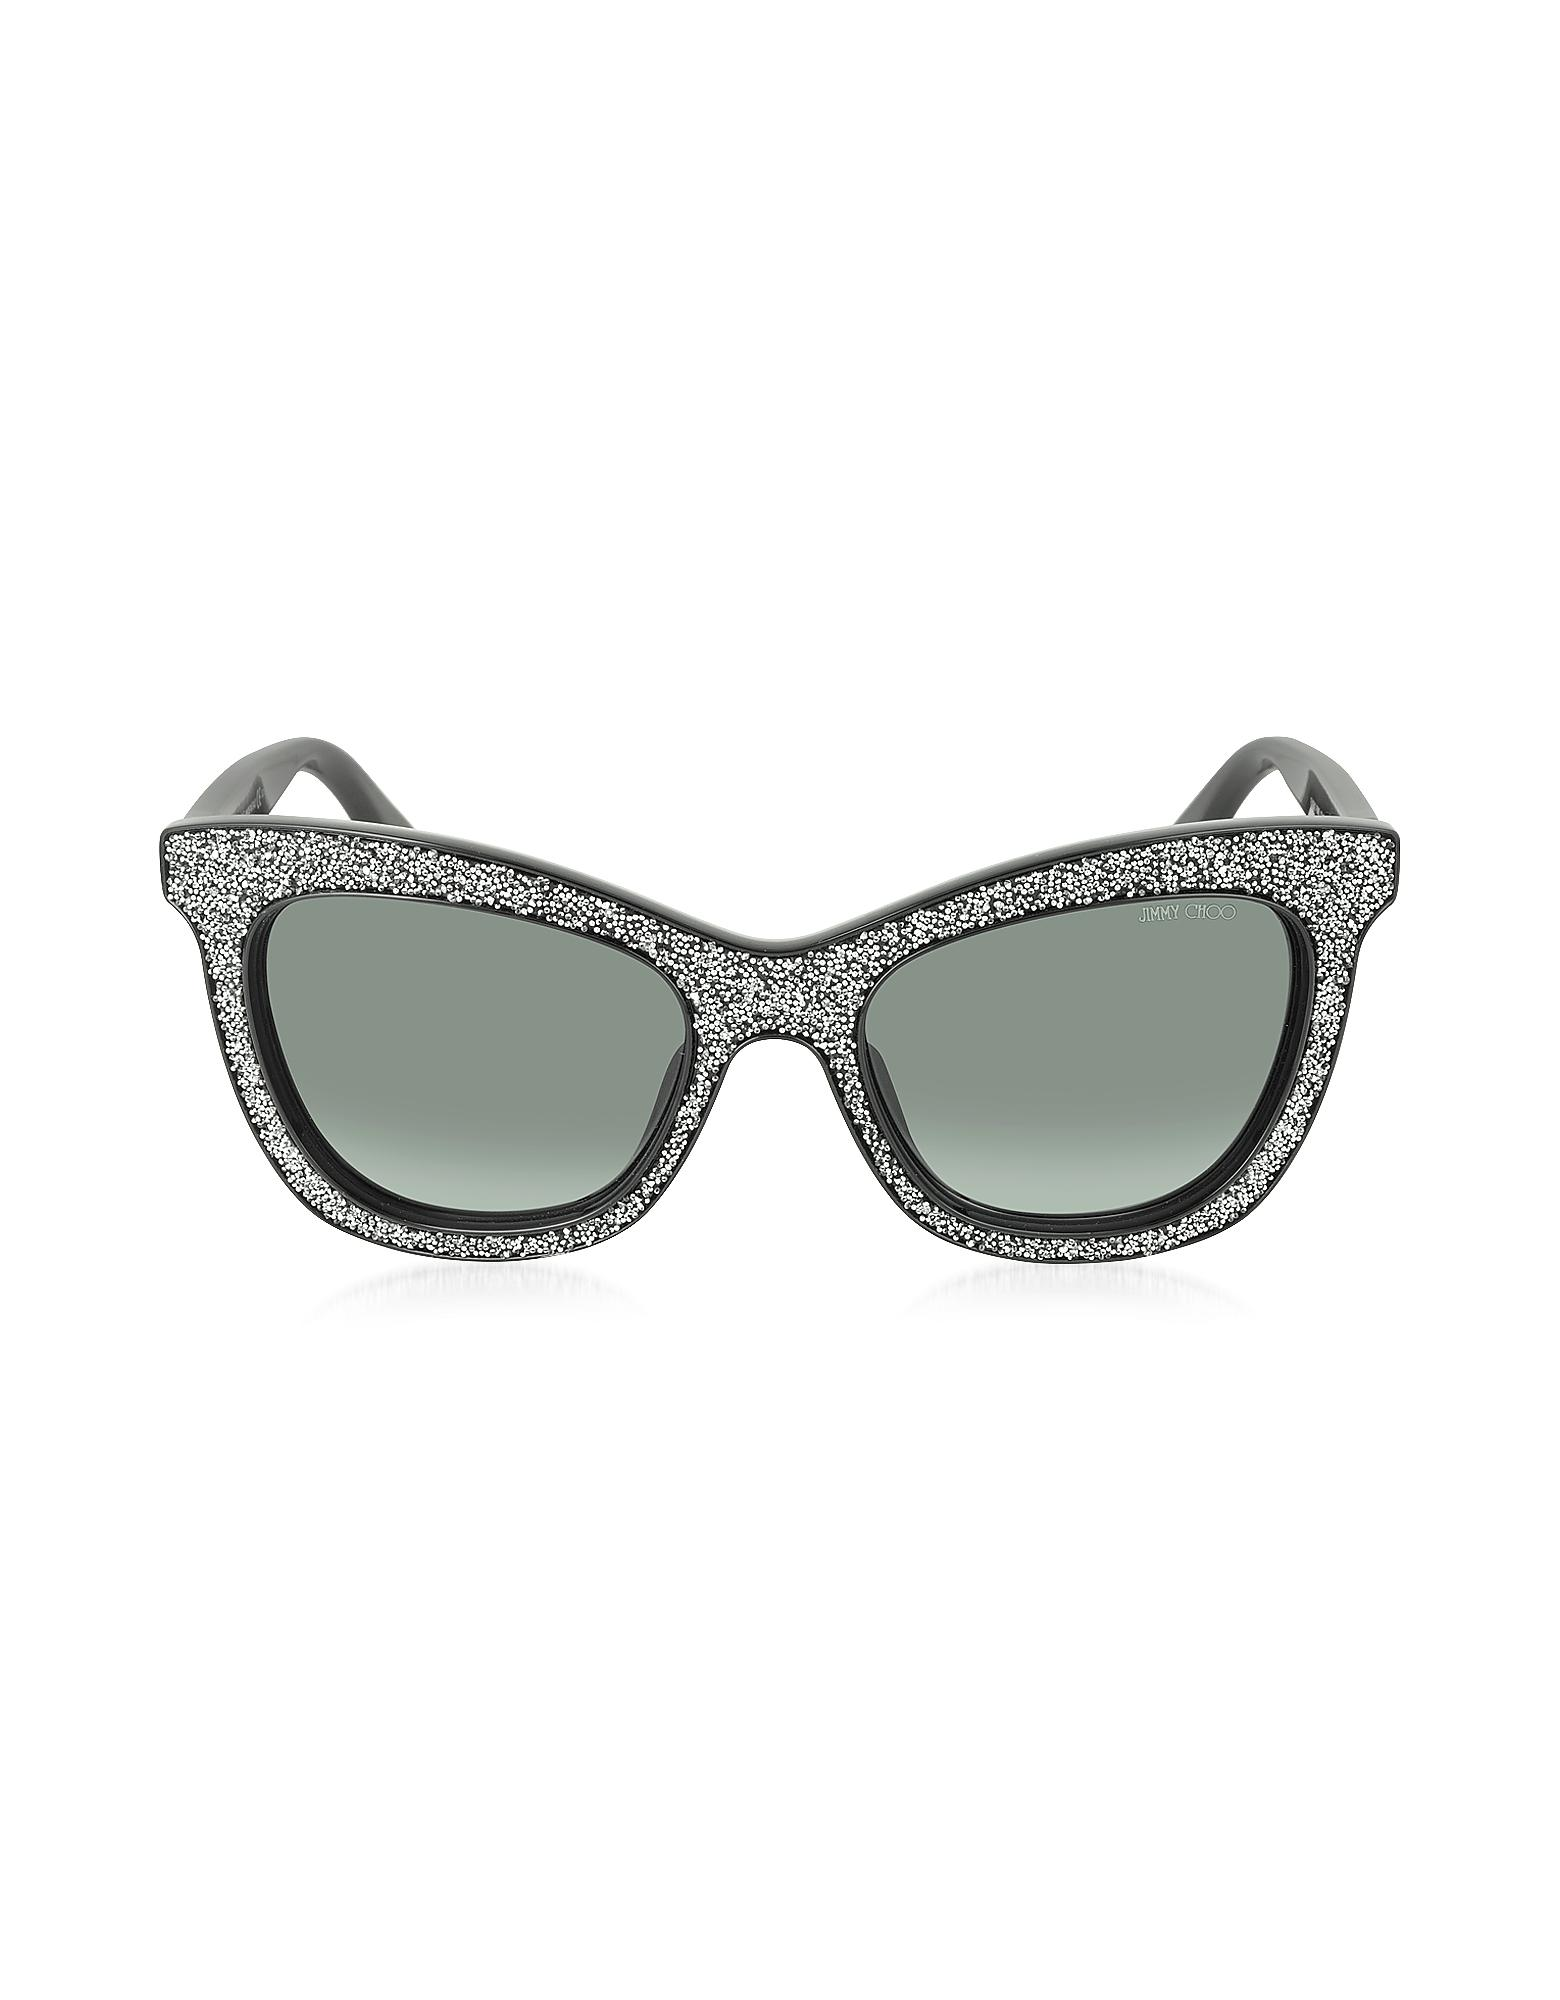 bd021af5c0a Silver Sunglasses For Women